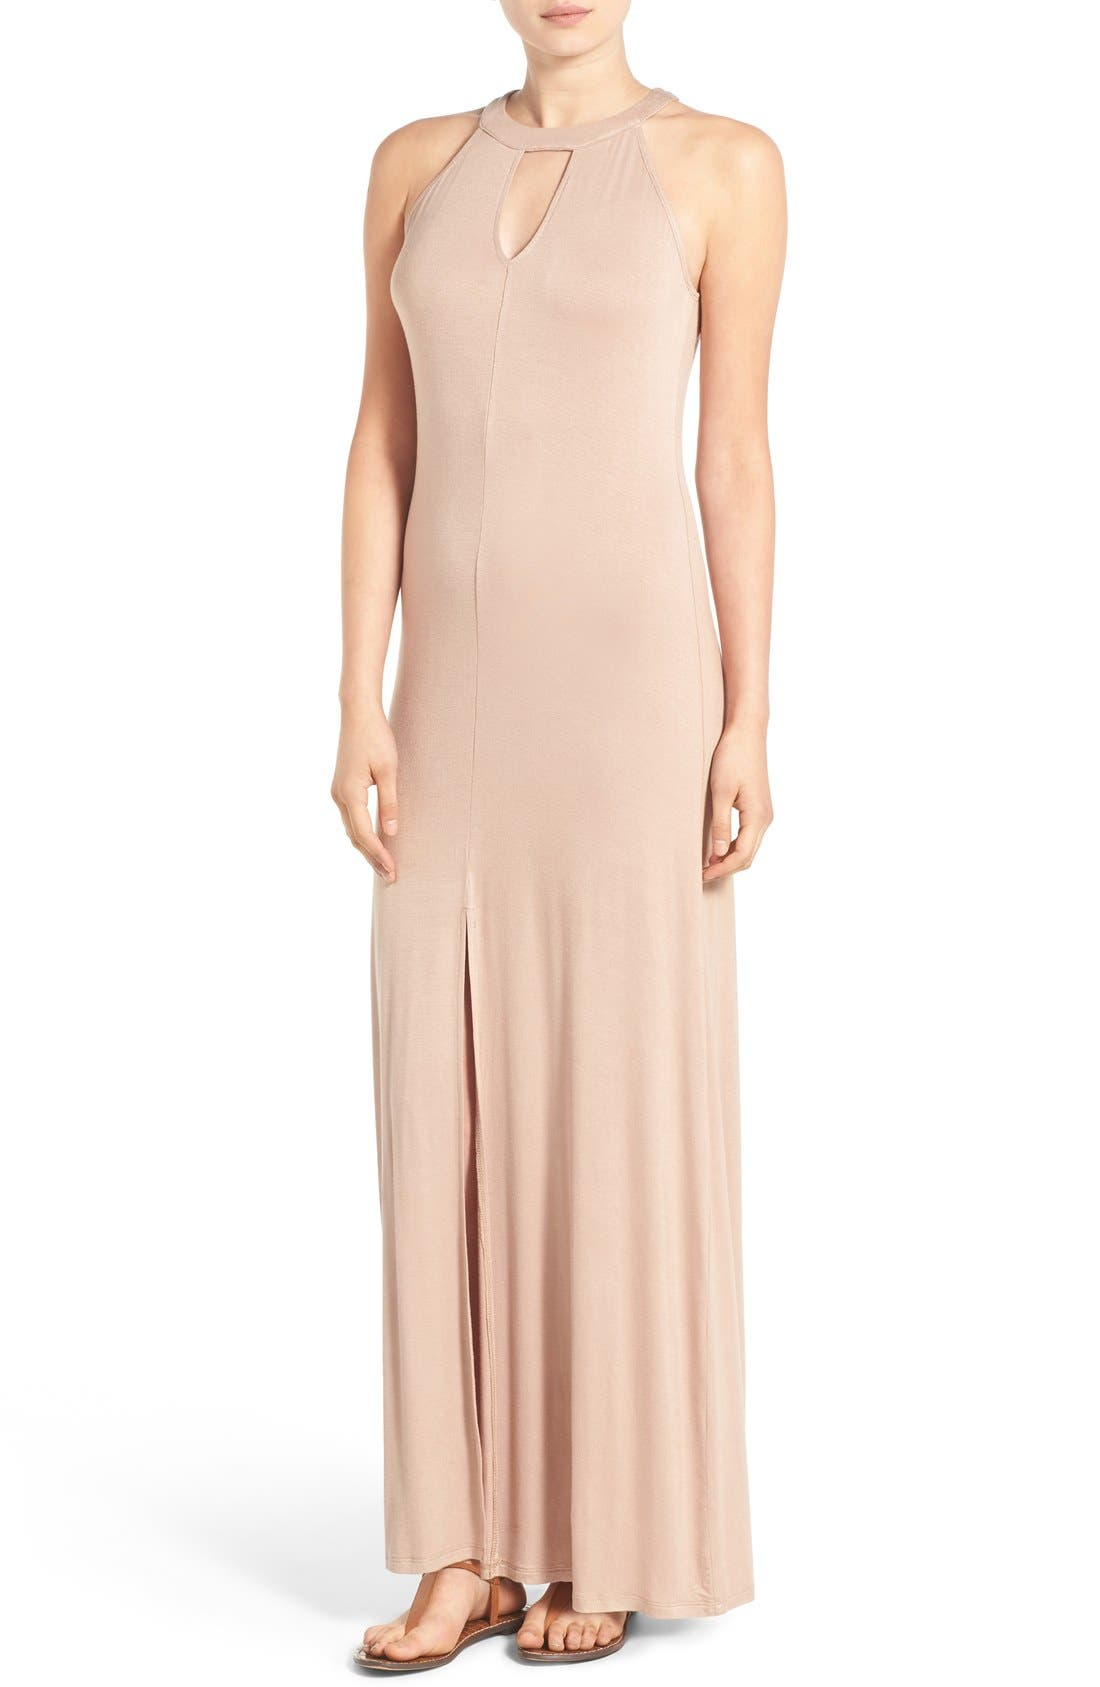 Alternate Image 1 Selected - Mimi Chica High Neck Maxi Dress